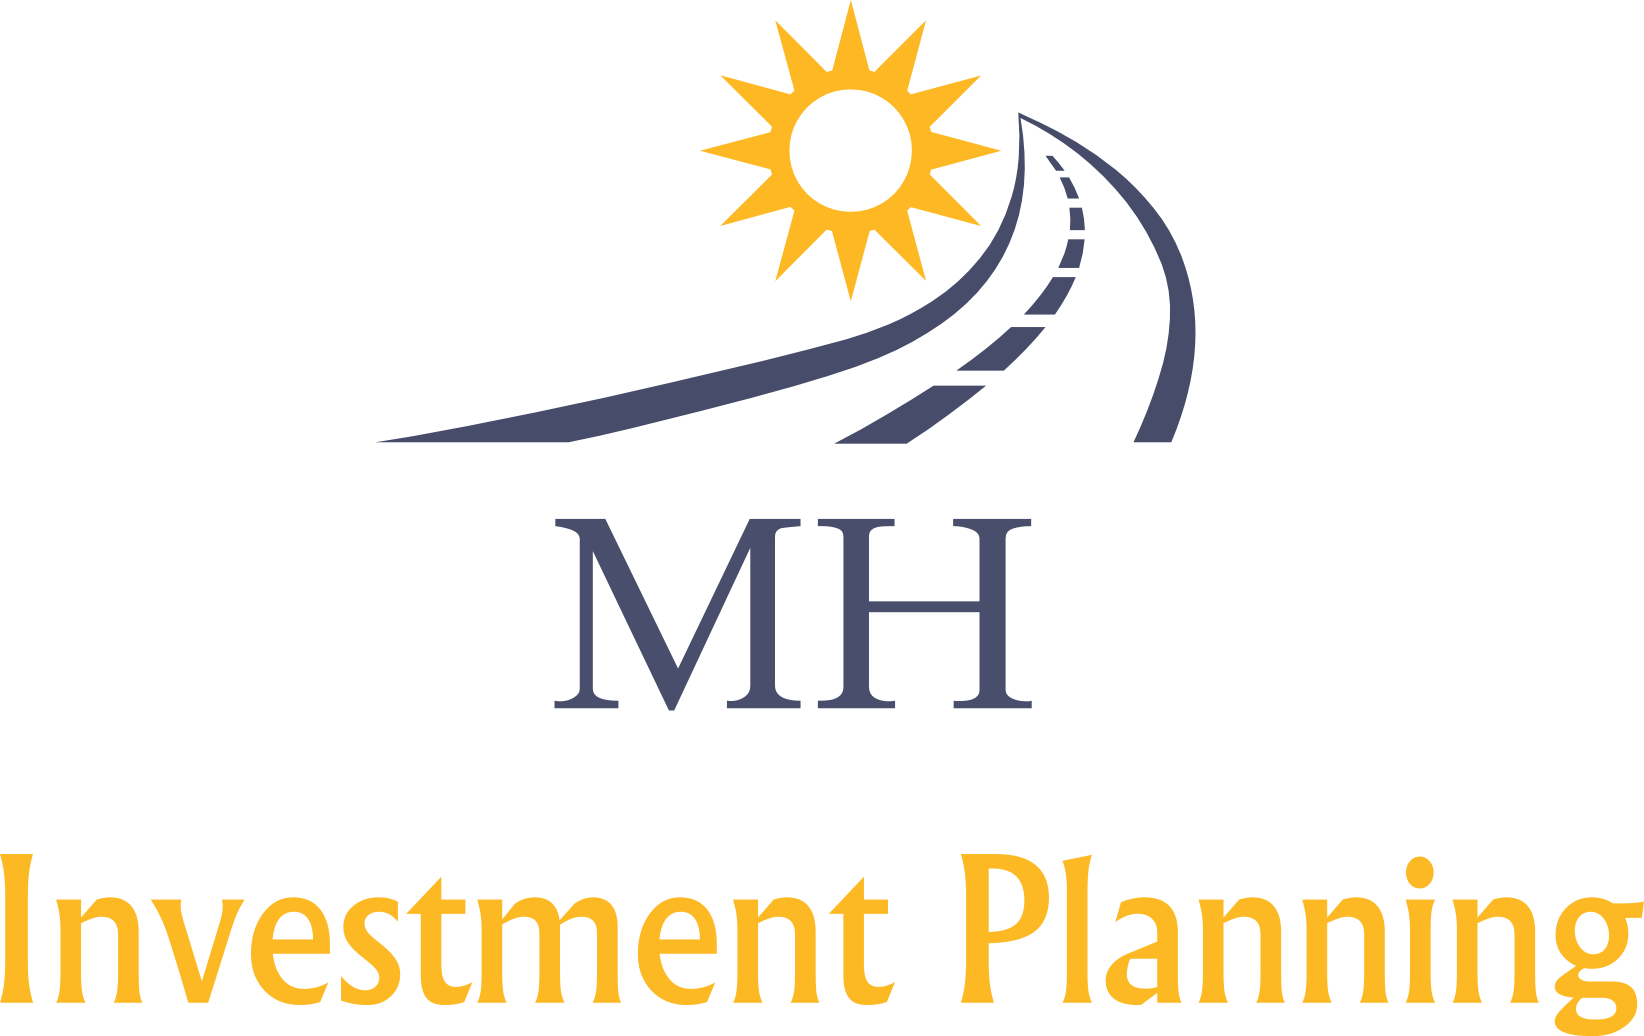 Michael Herrmann Investment Planning